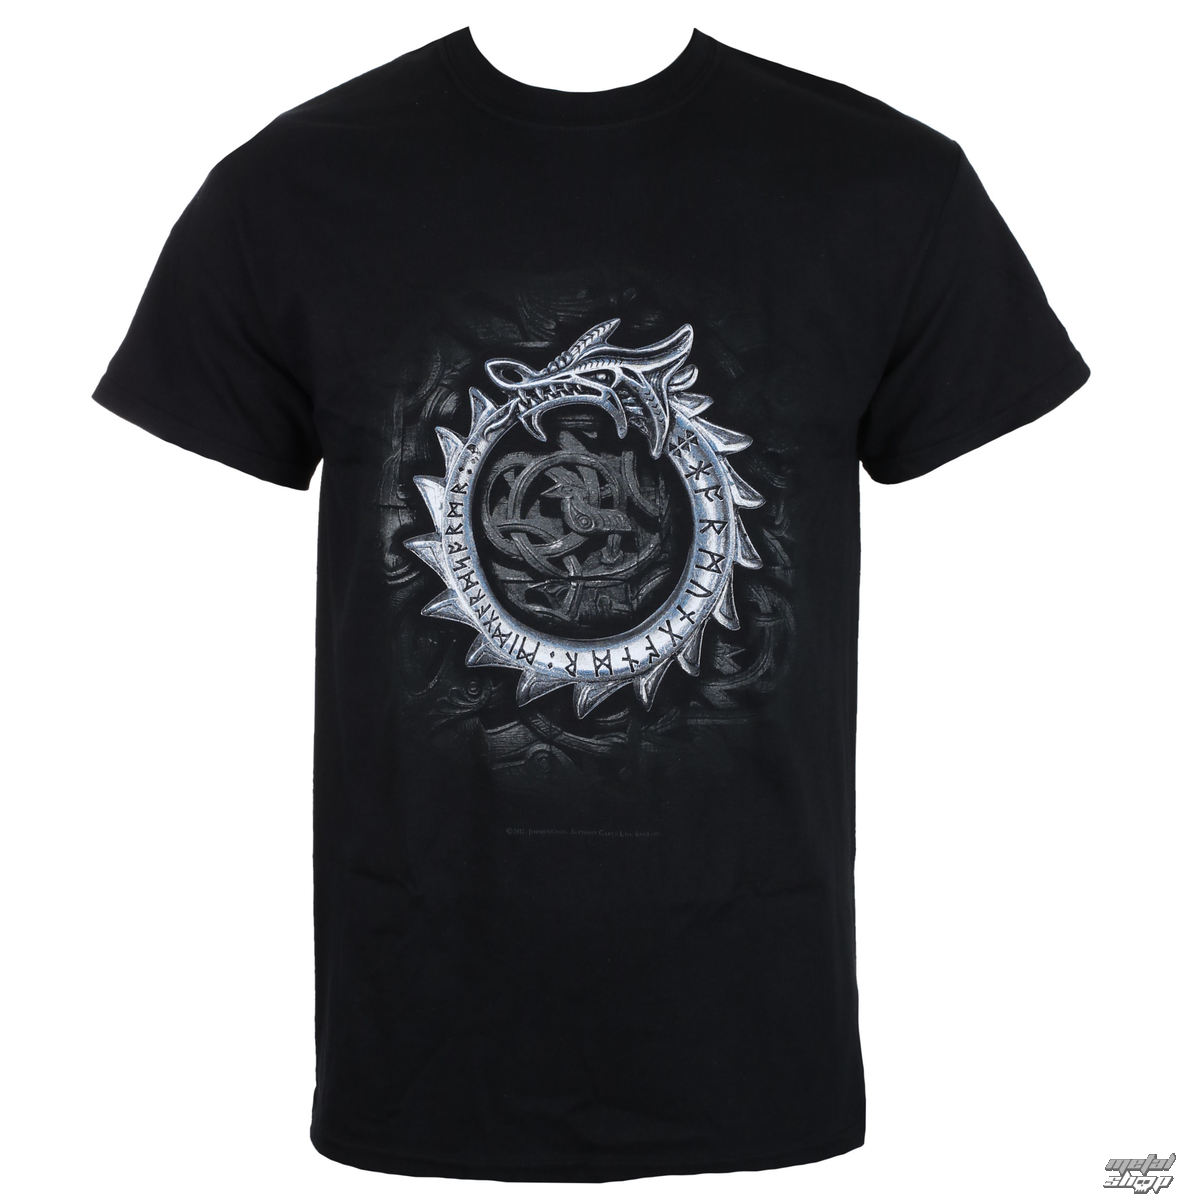 t-shirt men's - Jormungand - ALCHEMY GOTHIC